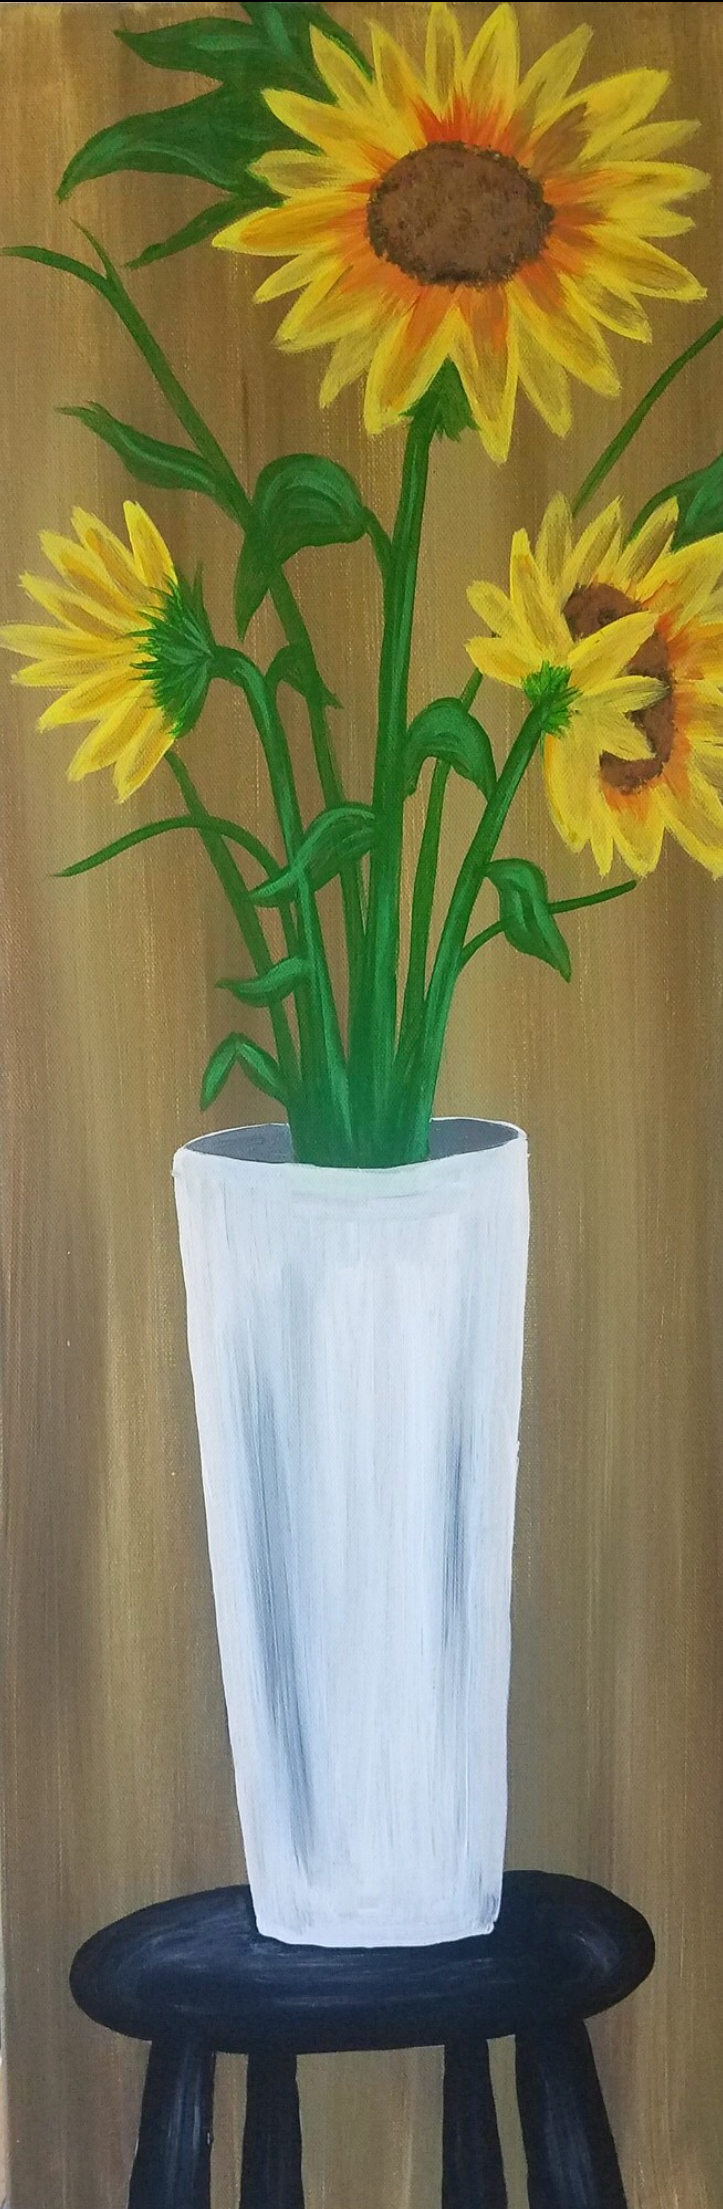 Sunflower Daze In A Vase